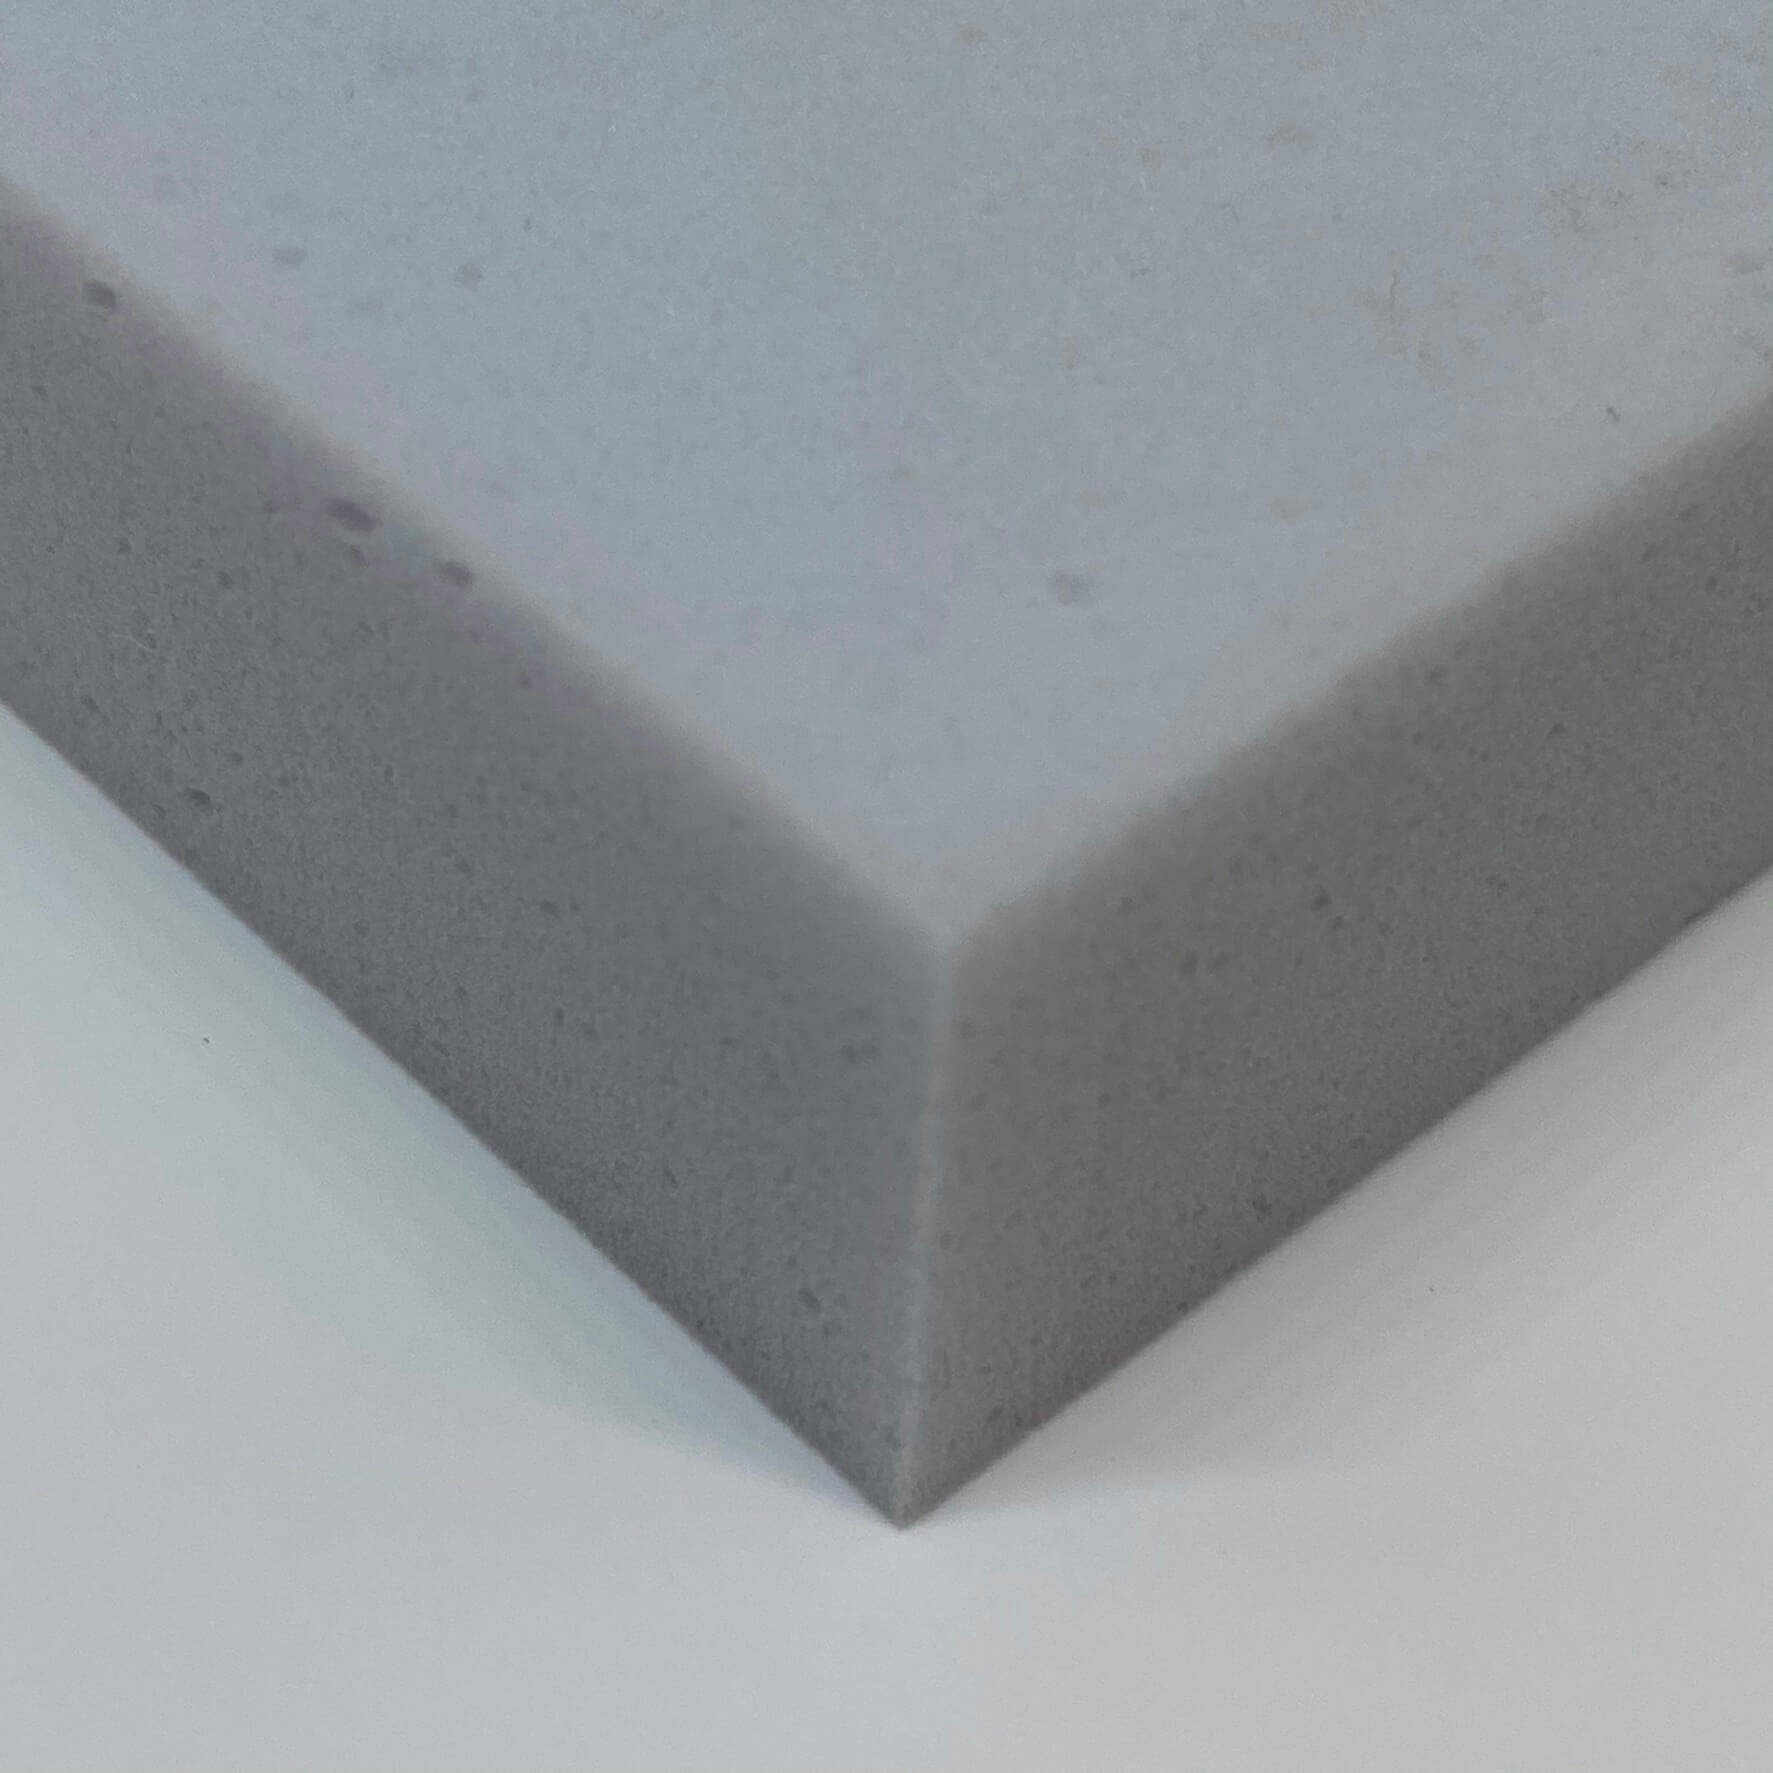 MTech Basotect Melamine Foam With Self-adhesive Backing Available From Clearsound Acoustics Online Store